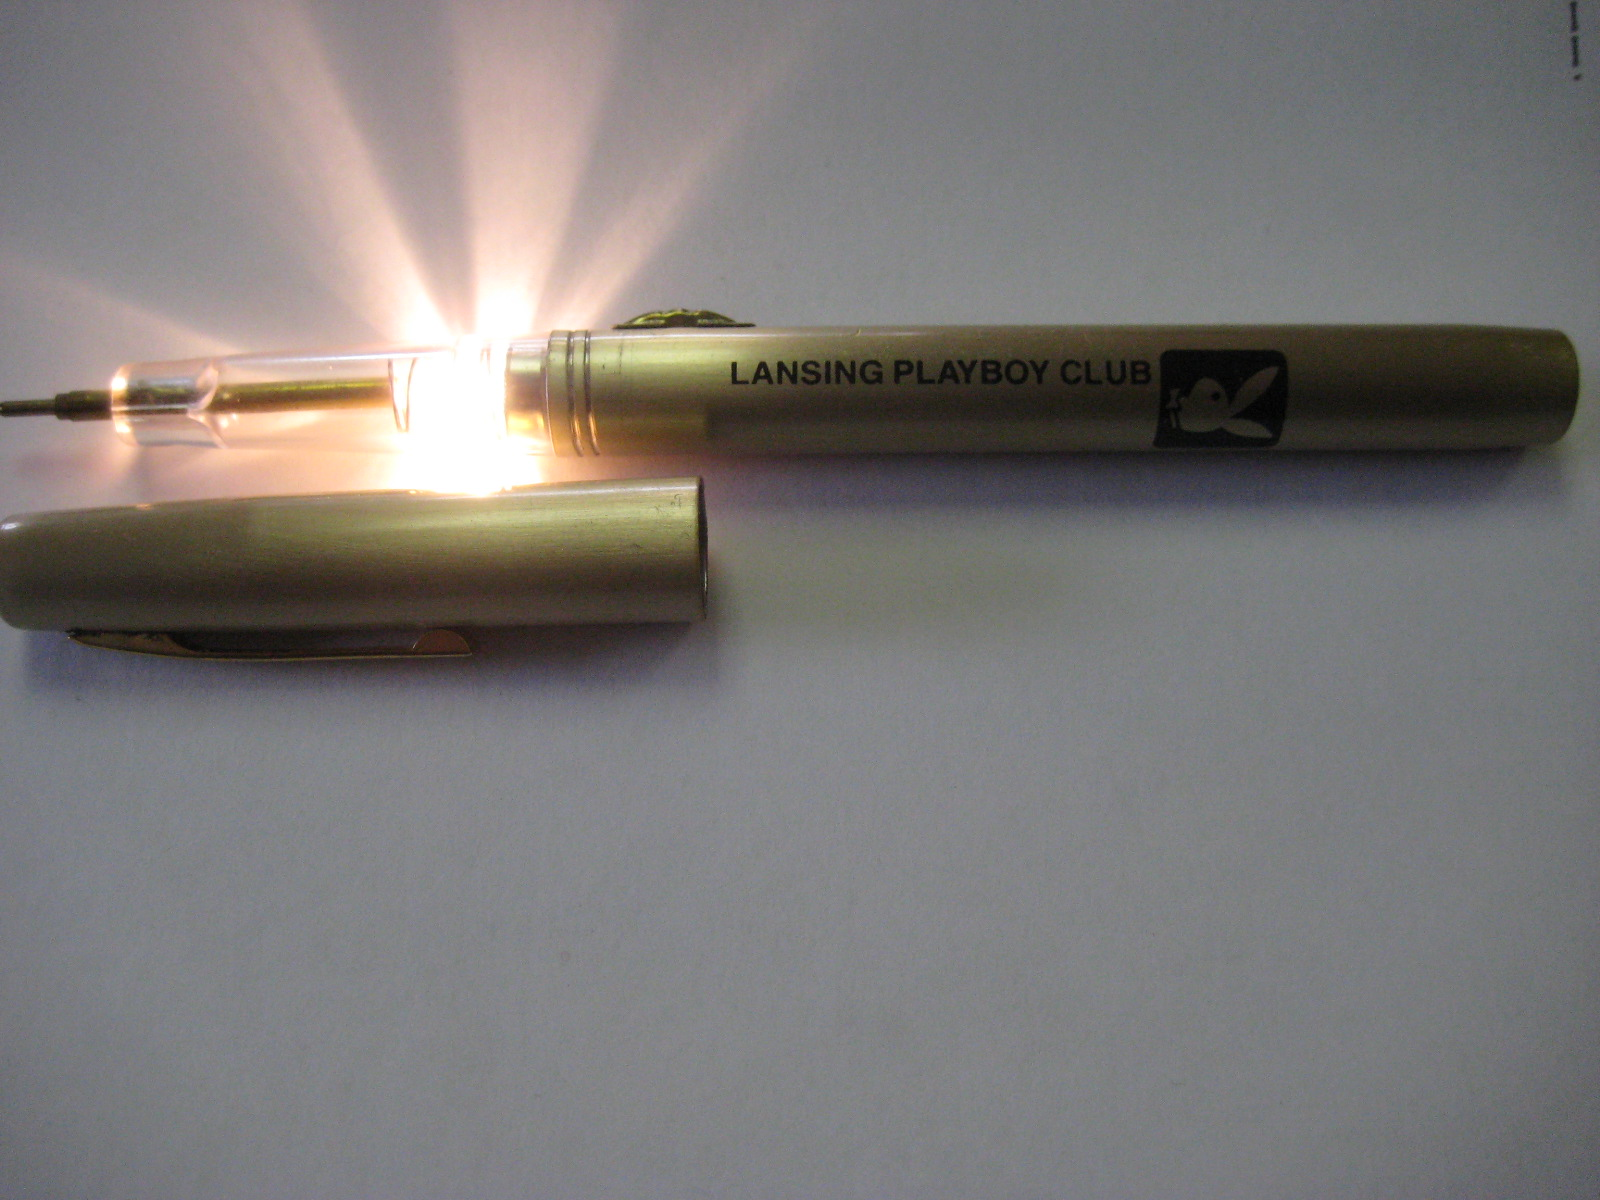 Lansing Playboy Club Flashlight Pen